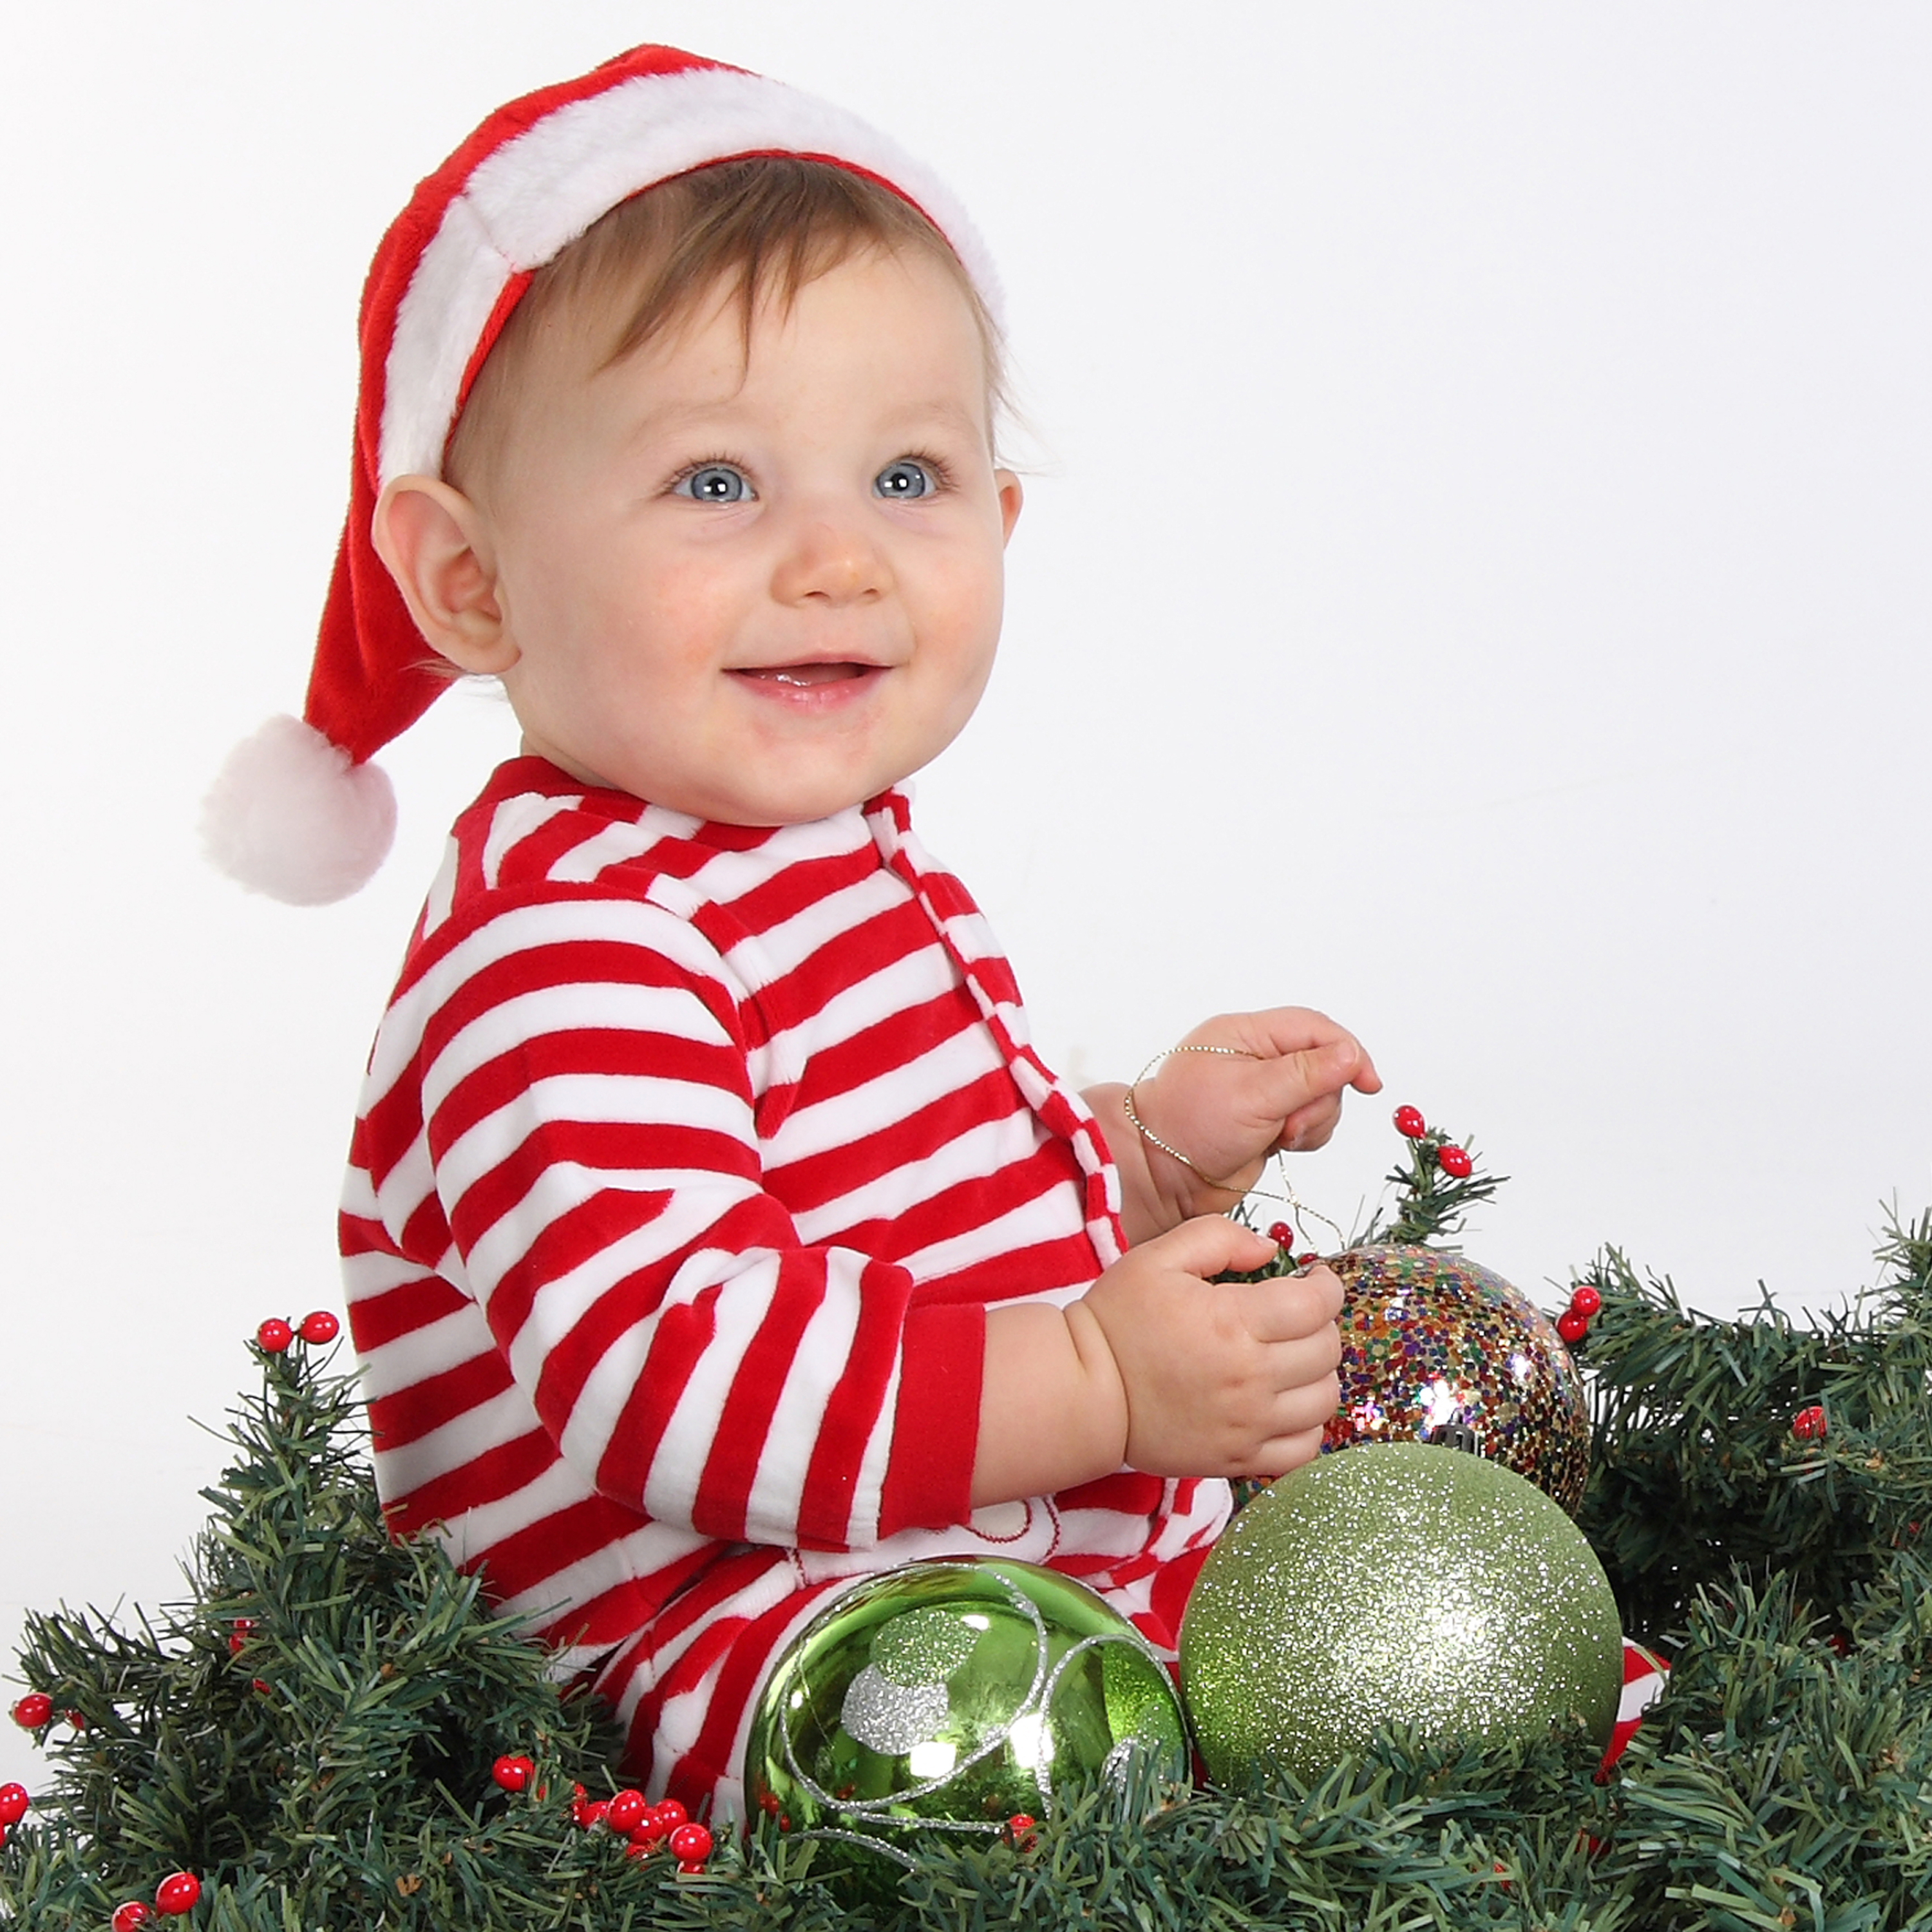 12 Cute Baby Christmas Photography Images